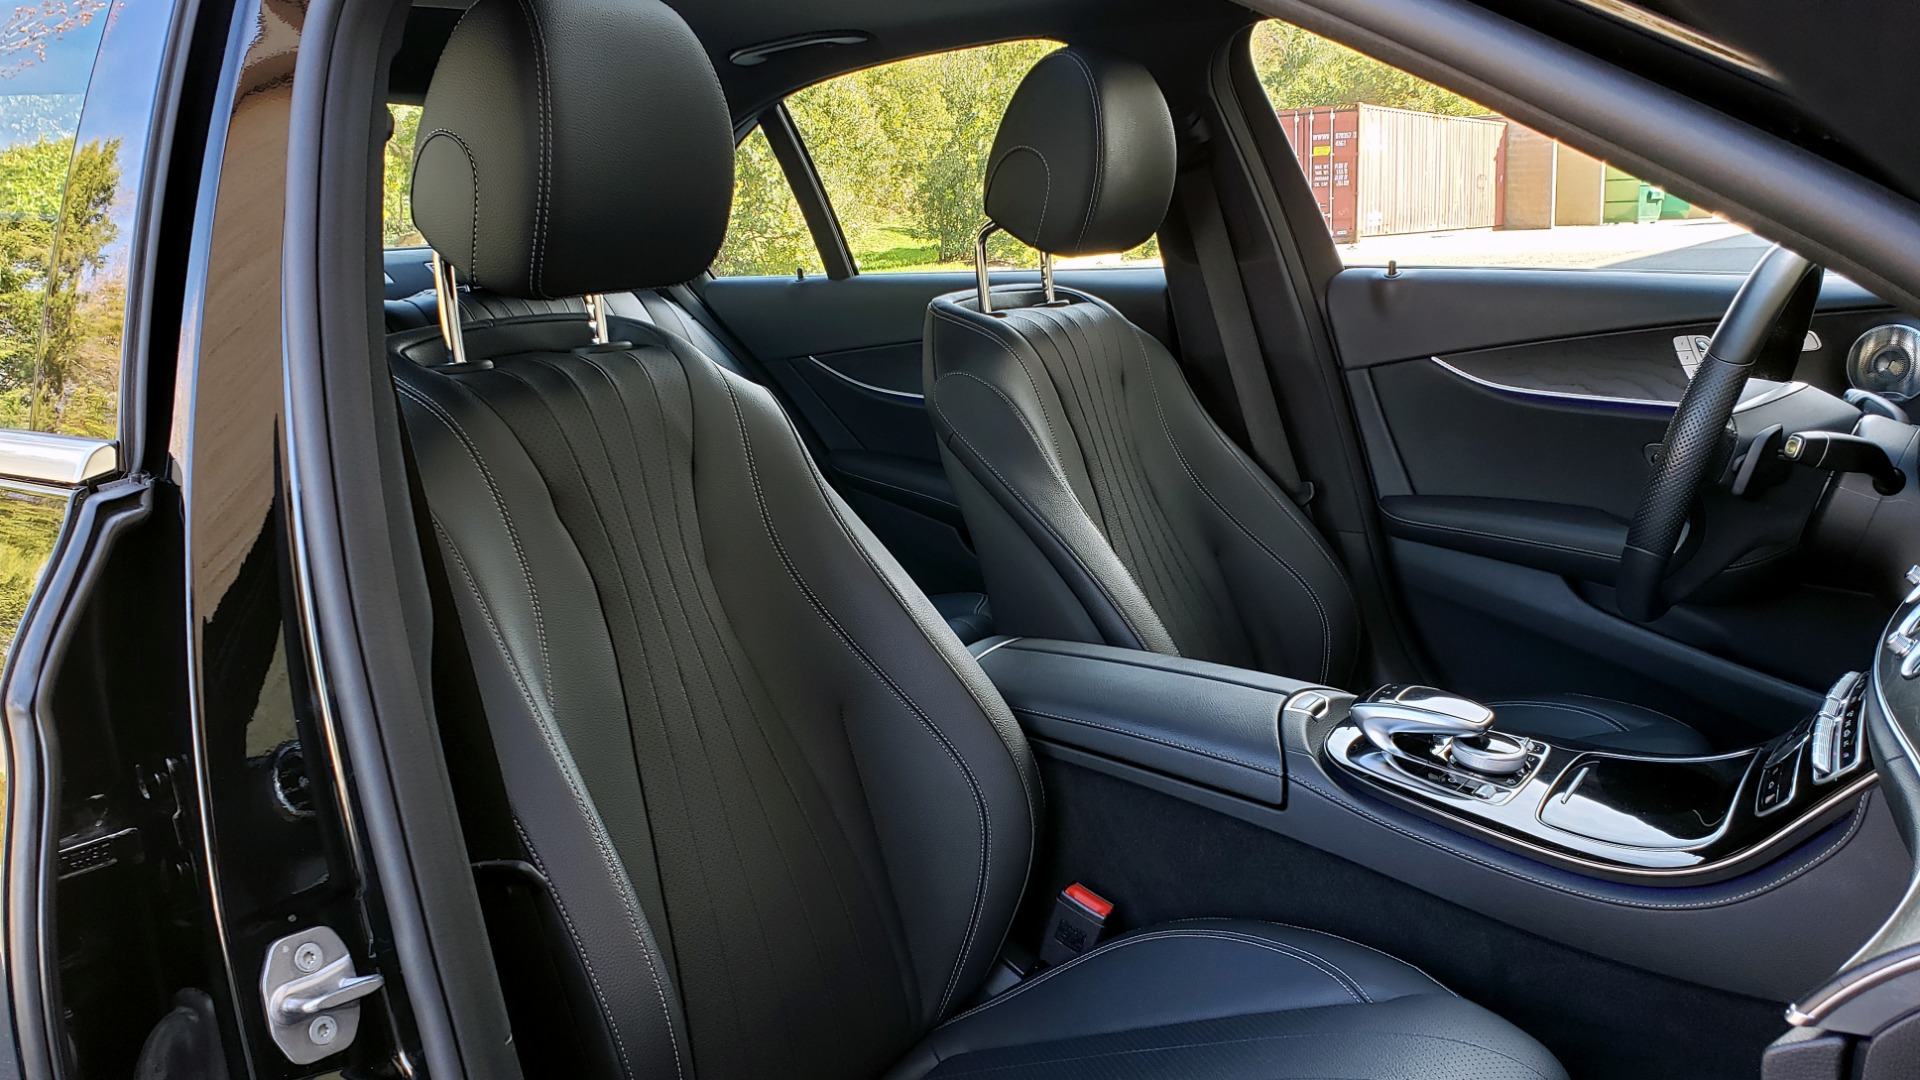 Used 2017 Mercedes-Benz E-CLASS E 300 PREMIUM / NAV / SUNROOF / BURMESTER / HTD STS / REARVIEW for sale Sold at Formula Imports in Charlotte NC 28227 68